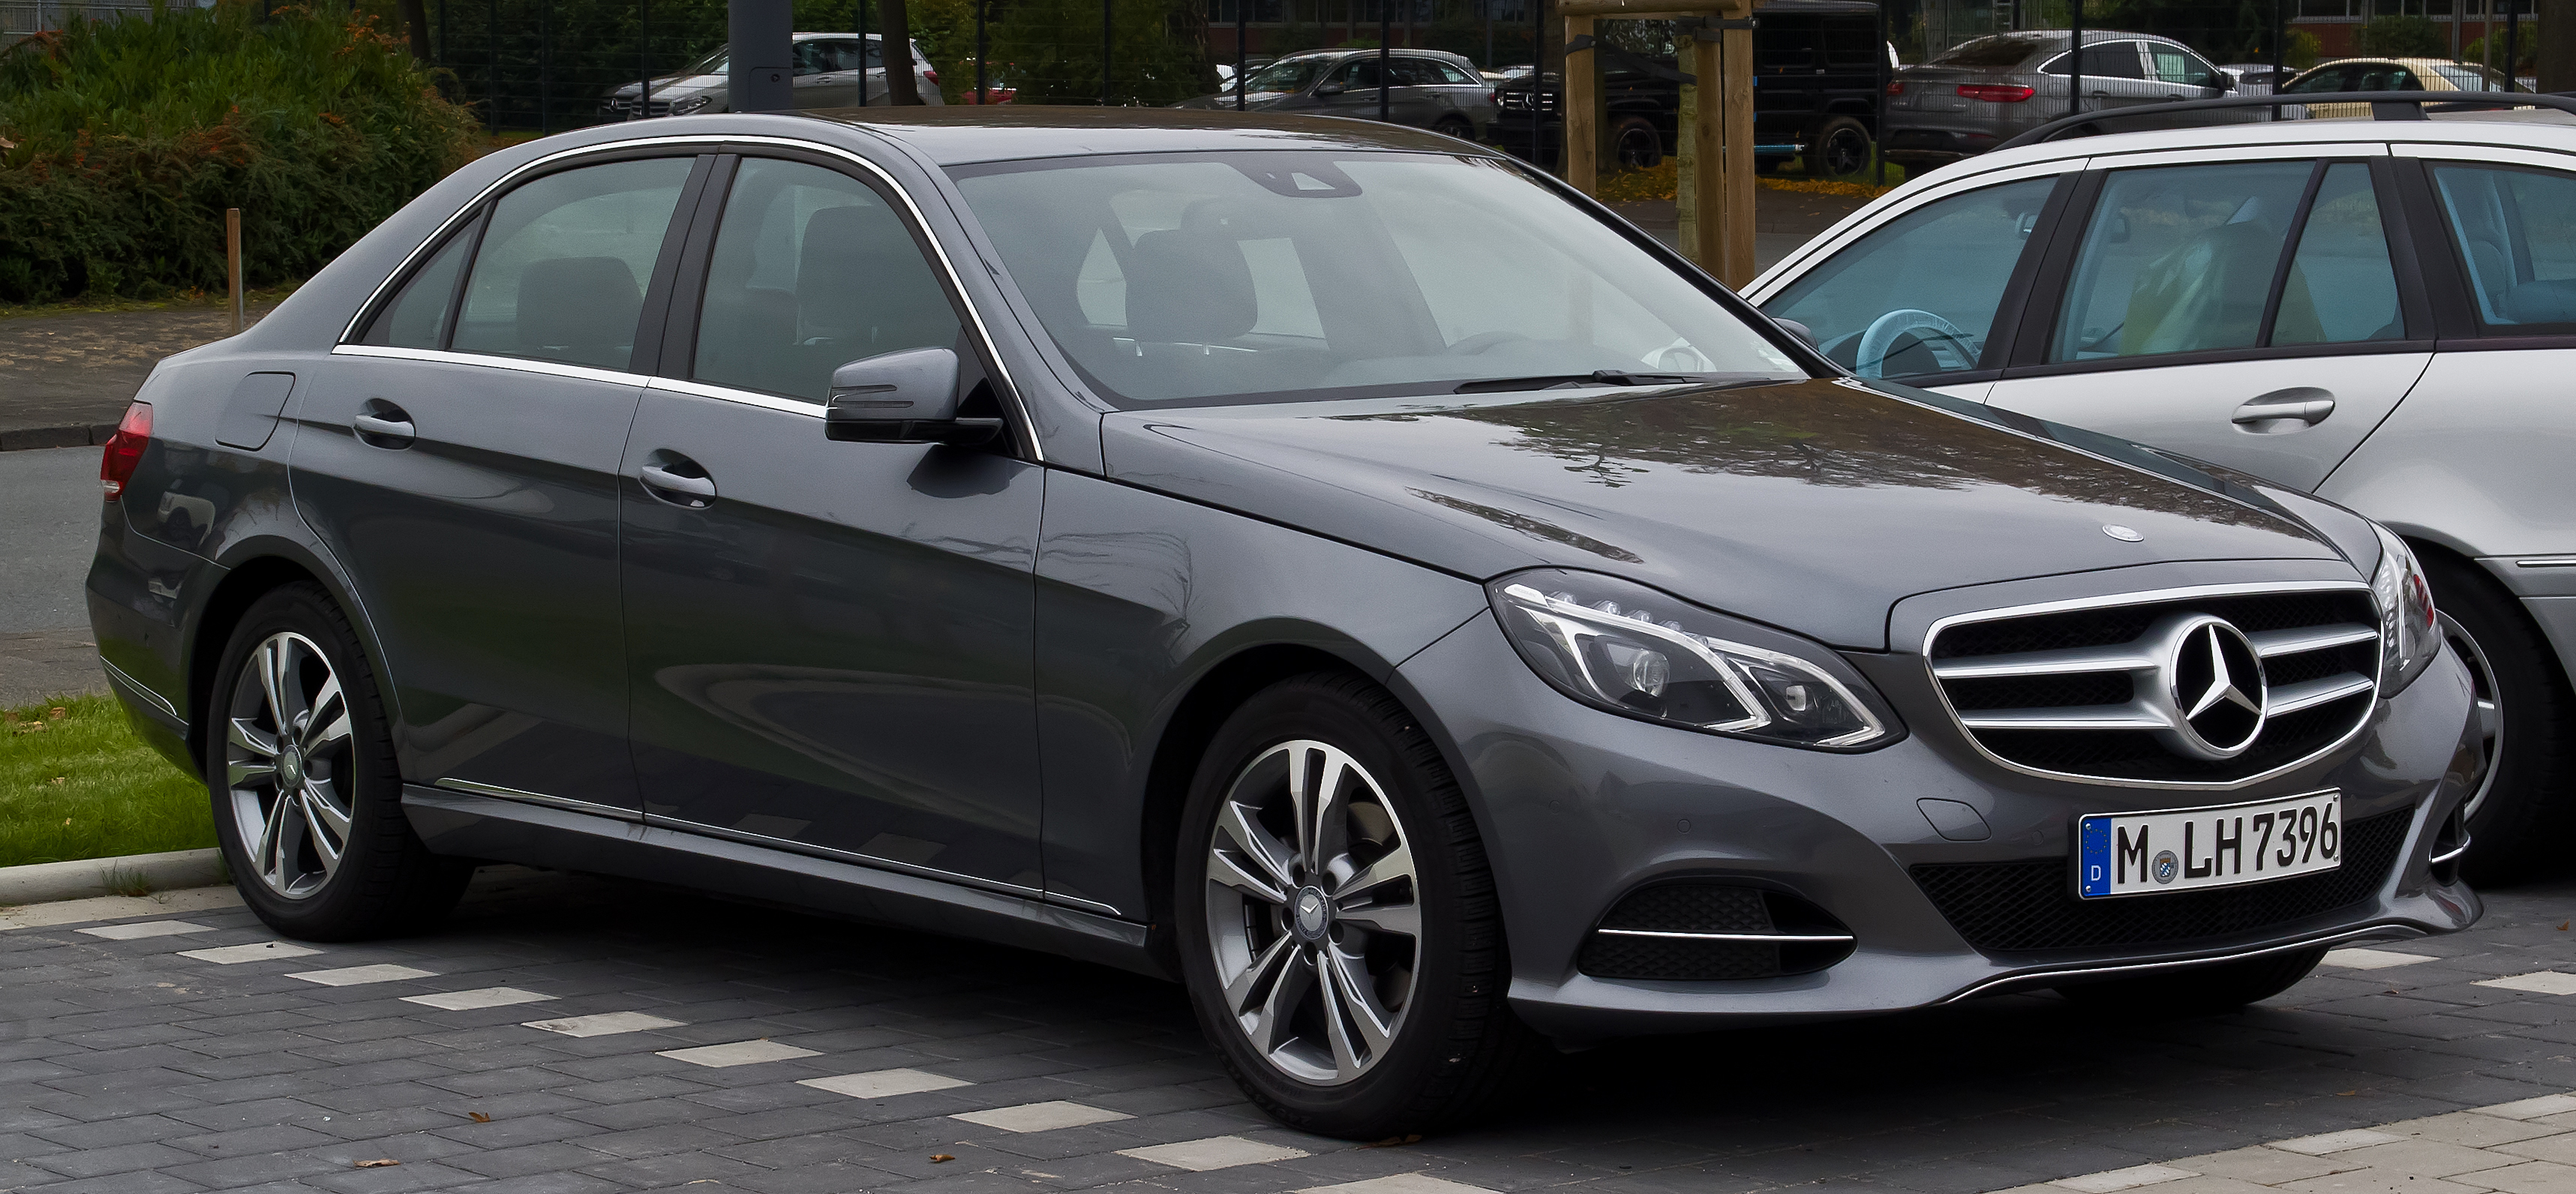 File:Mercedes-Benz E 200 Avantgarde (W 212, Facelift ...